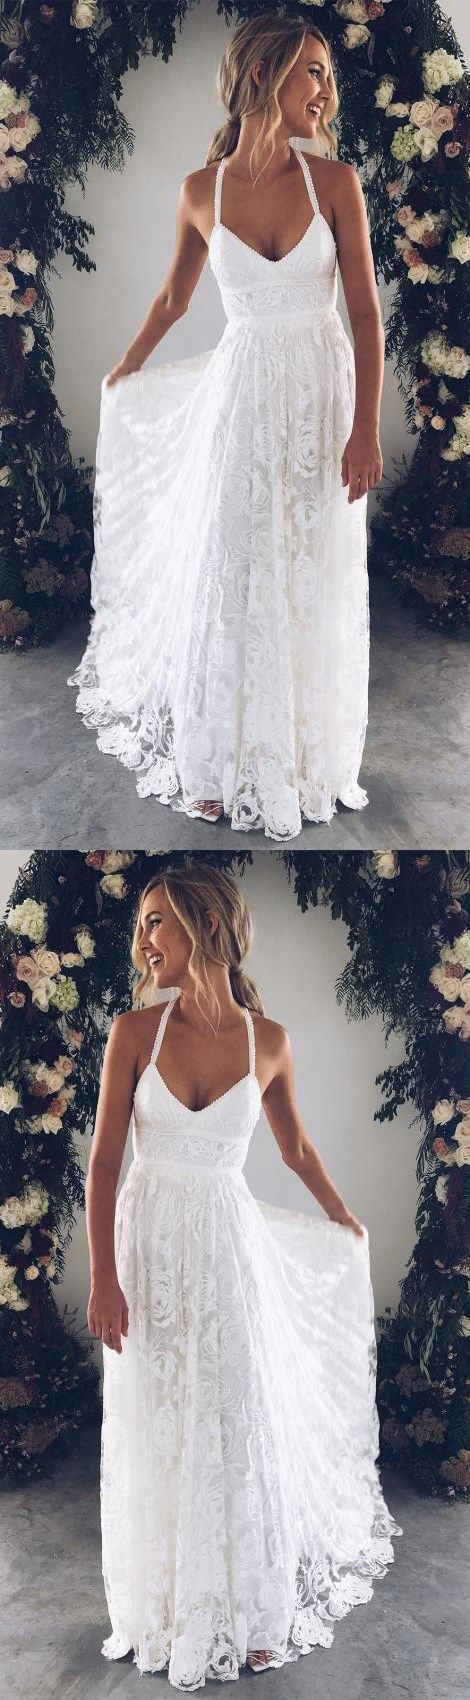 White v neck lace long prom dress, white evening dress wedding dress charming bridal dresses 10696